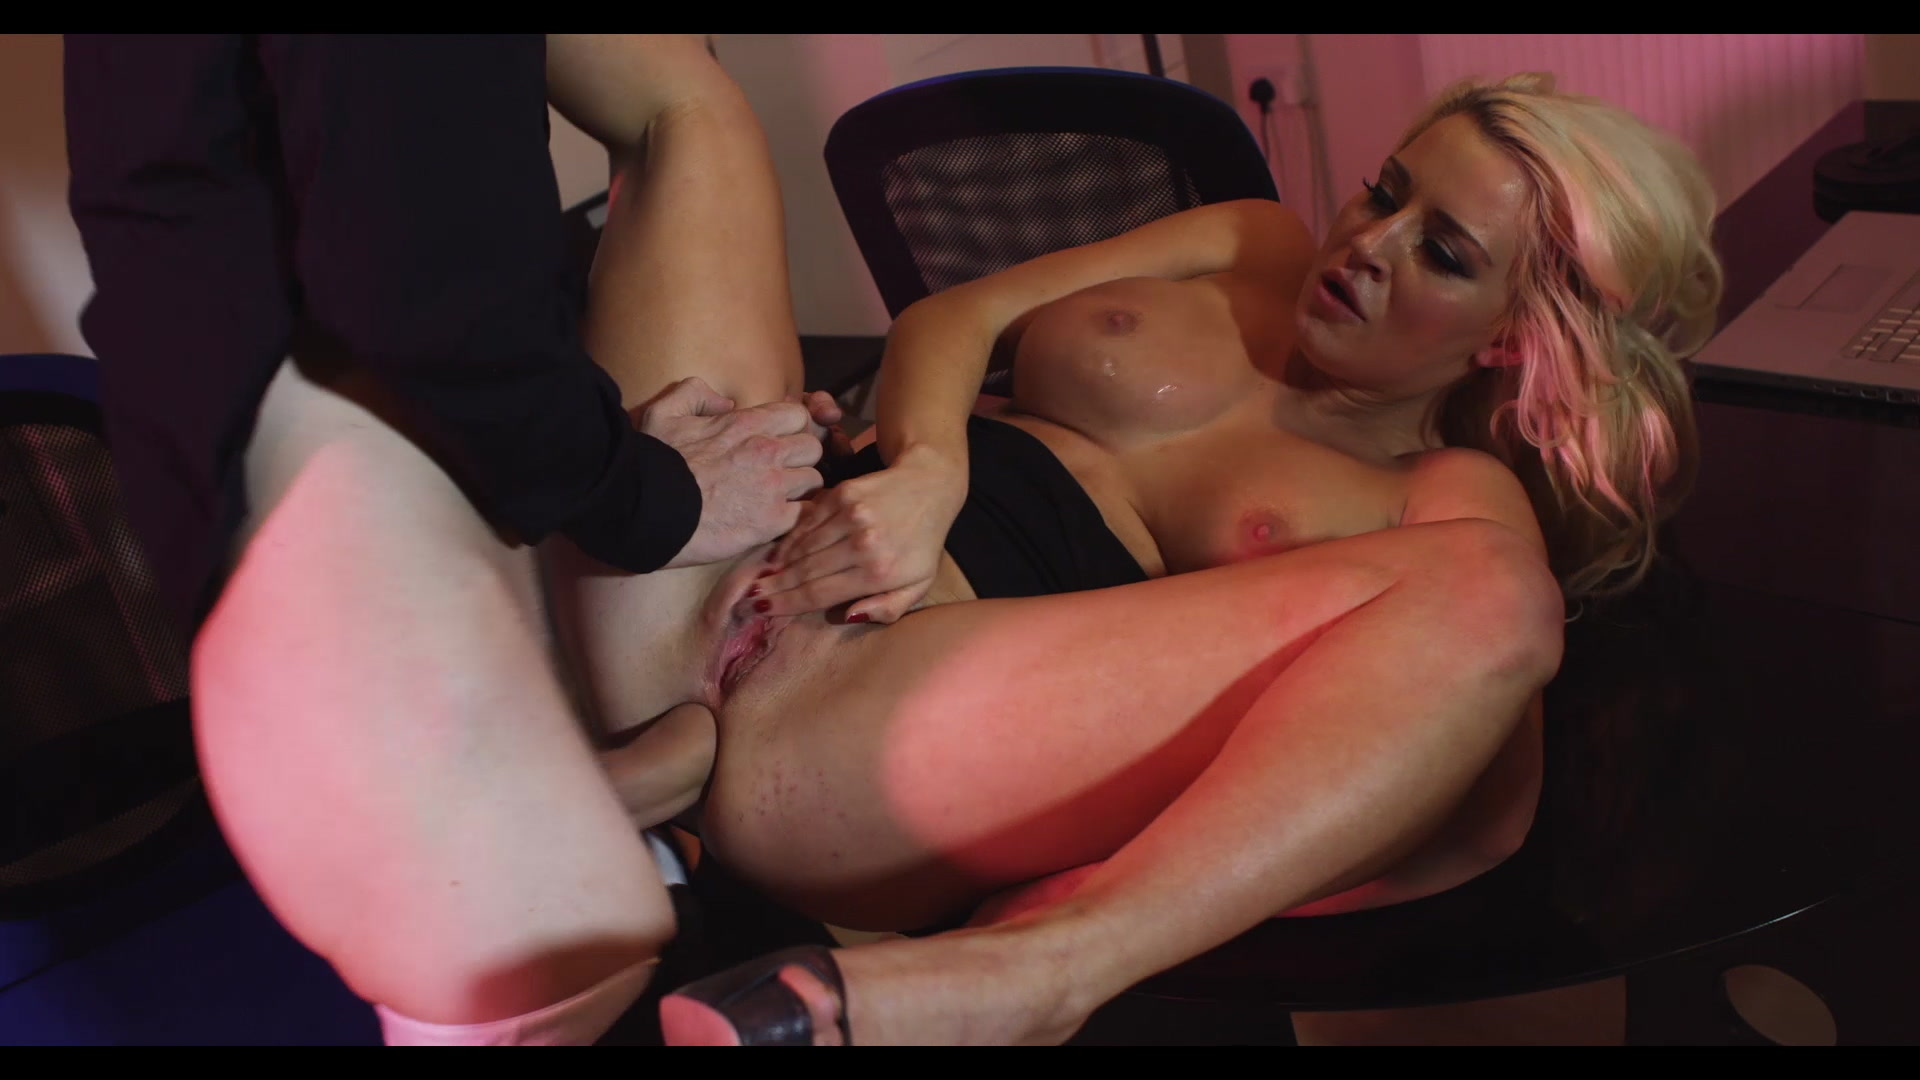 Scene with Sienna Day - image 11 out of 20